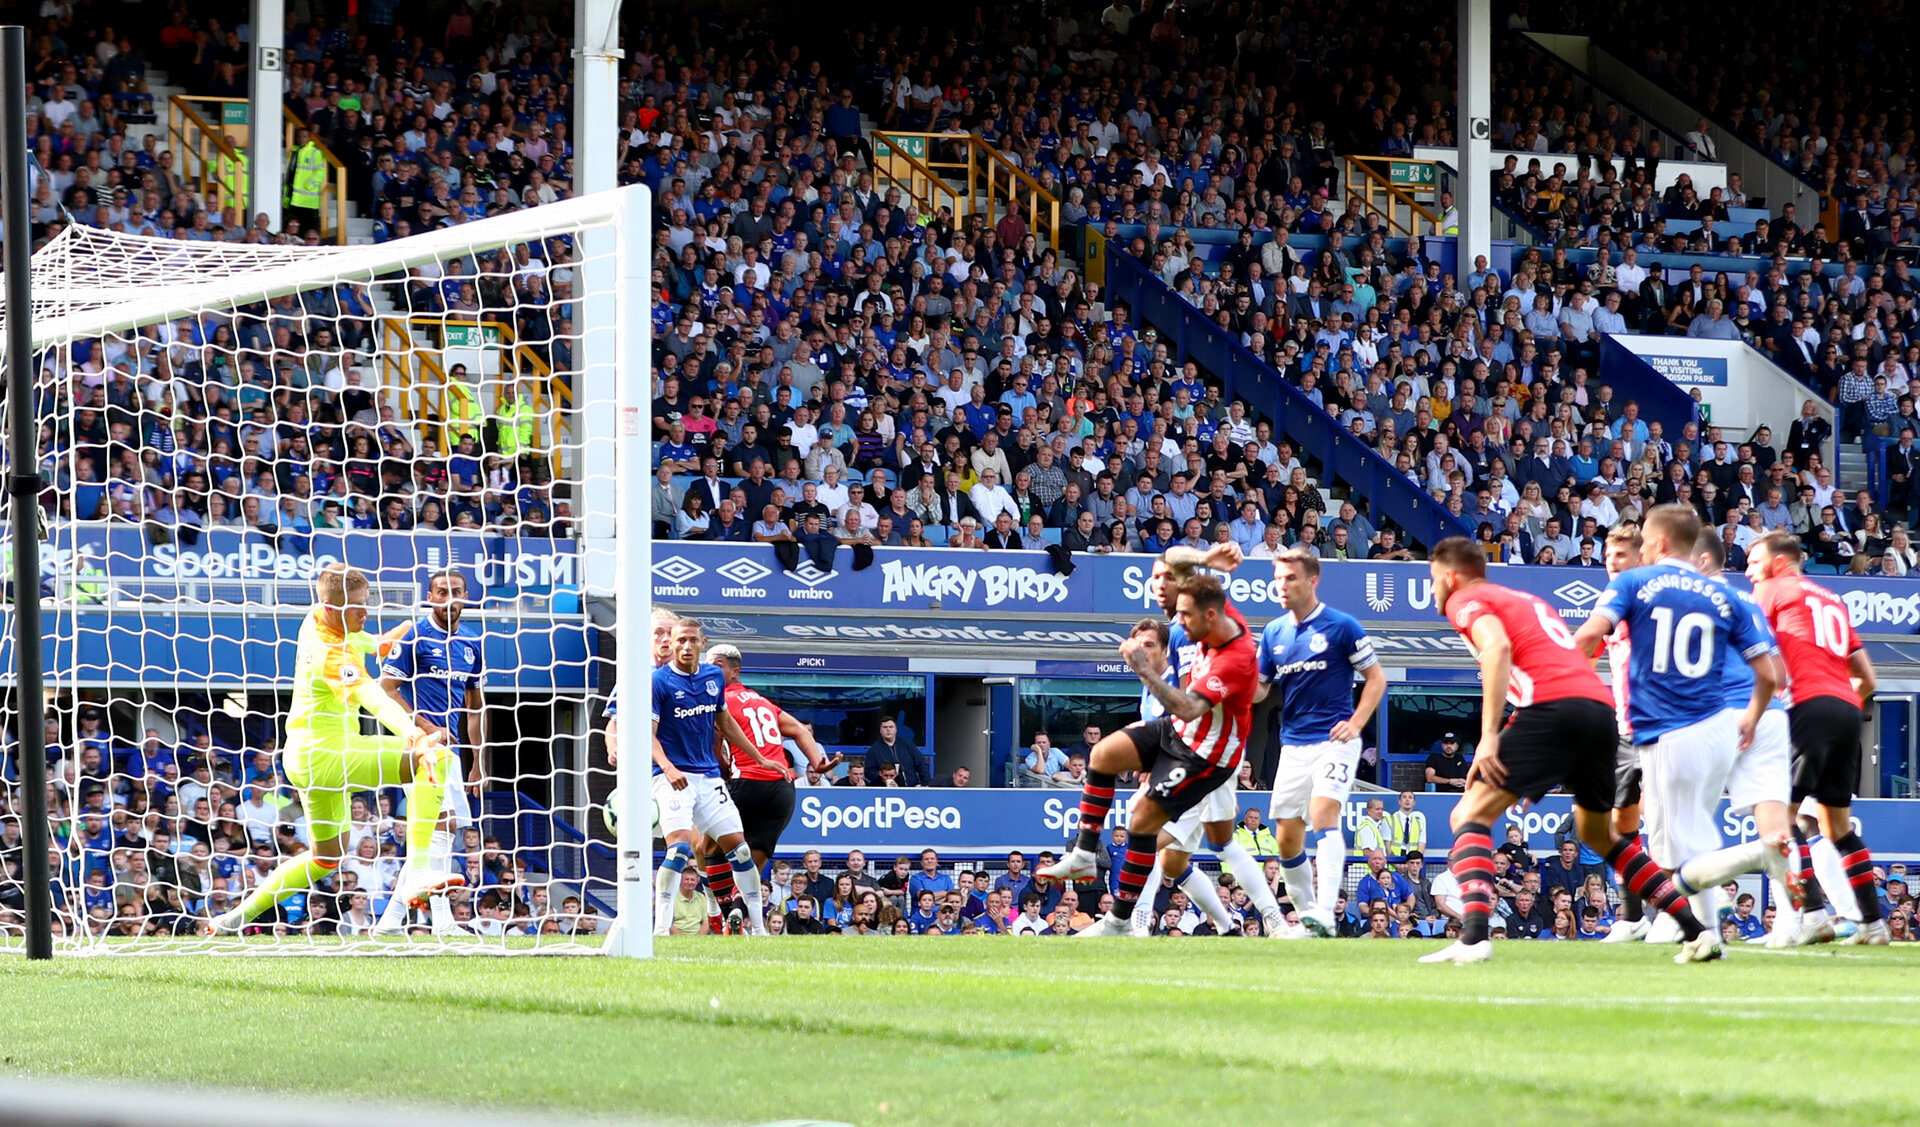 LIVERPOOL, ENGLAND - AUGUST 18: Danny Ings of Southampton scores during the Premier League match between Everton FC and Southampton FC at Goodison Park on August 18, 2018 in Liverpool, United Kingdom. (Photo by Matt Watson/Southampton FC via Getty Images)